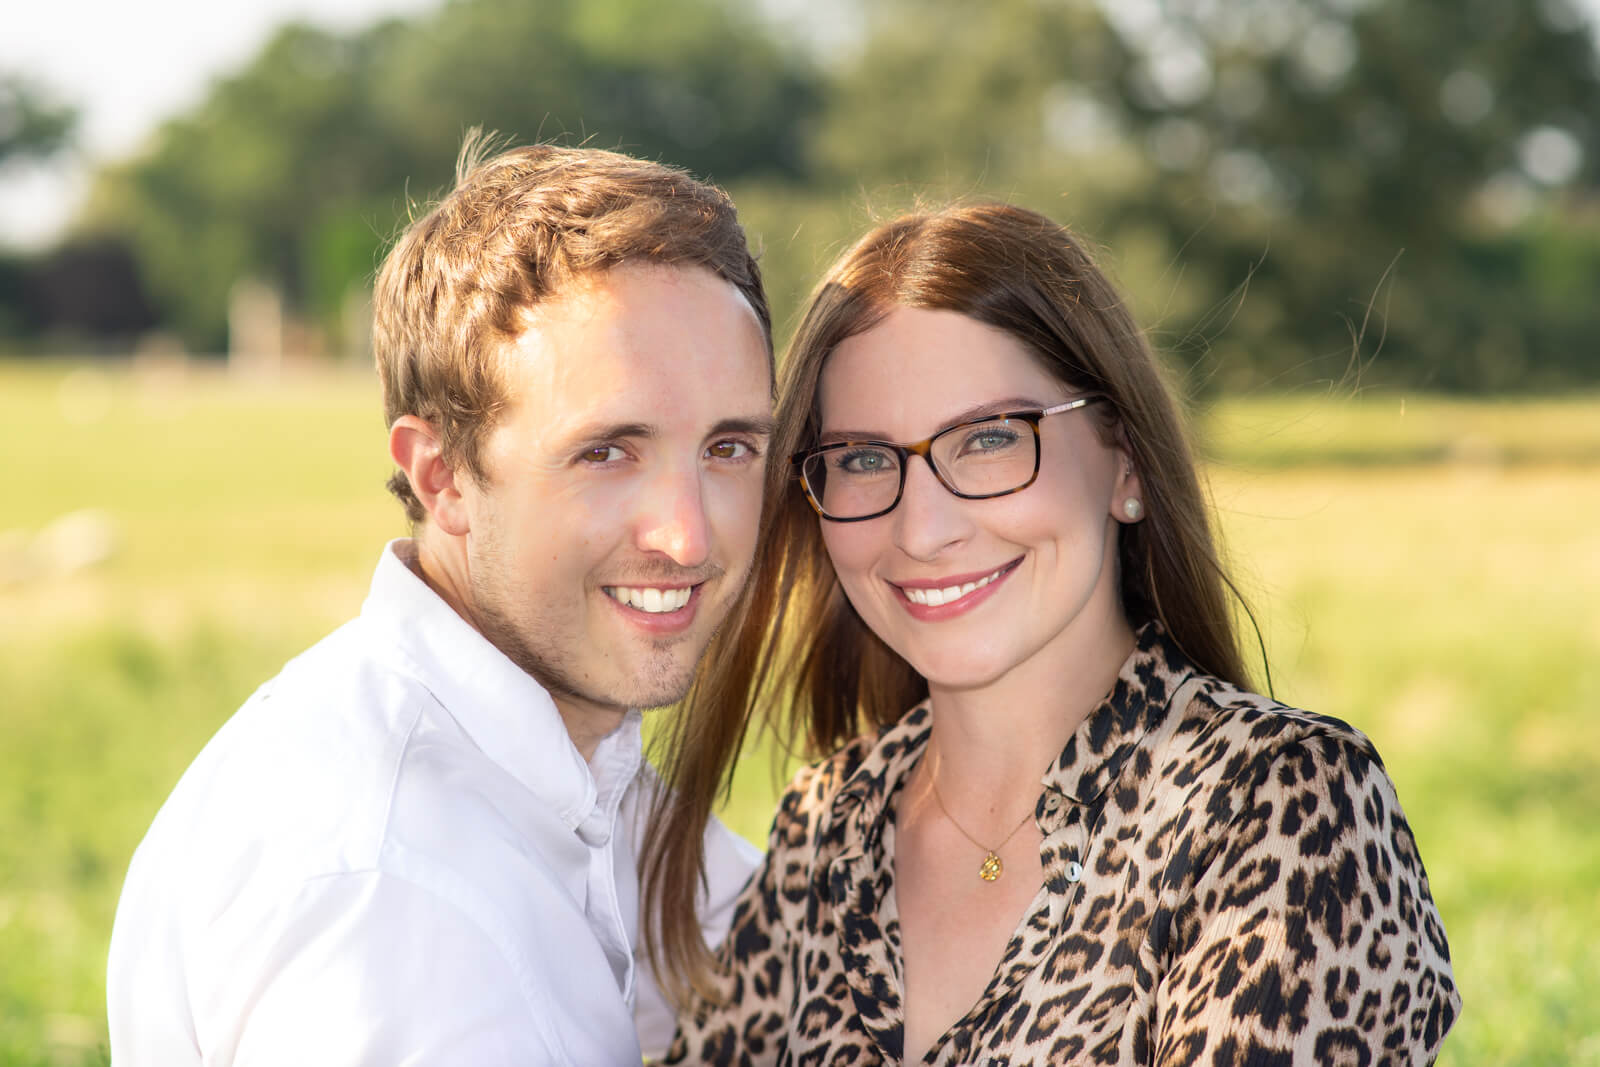 Engagement photo of a couple looking at the camera with green grass in the background